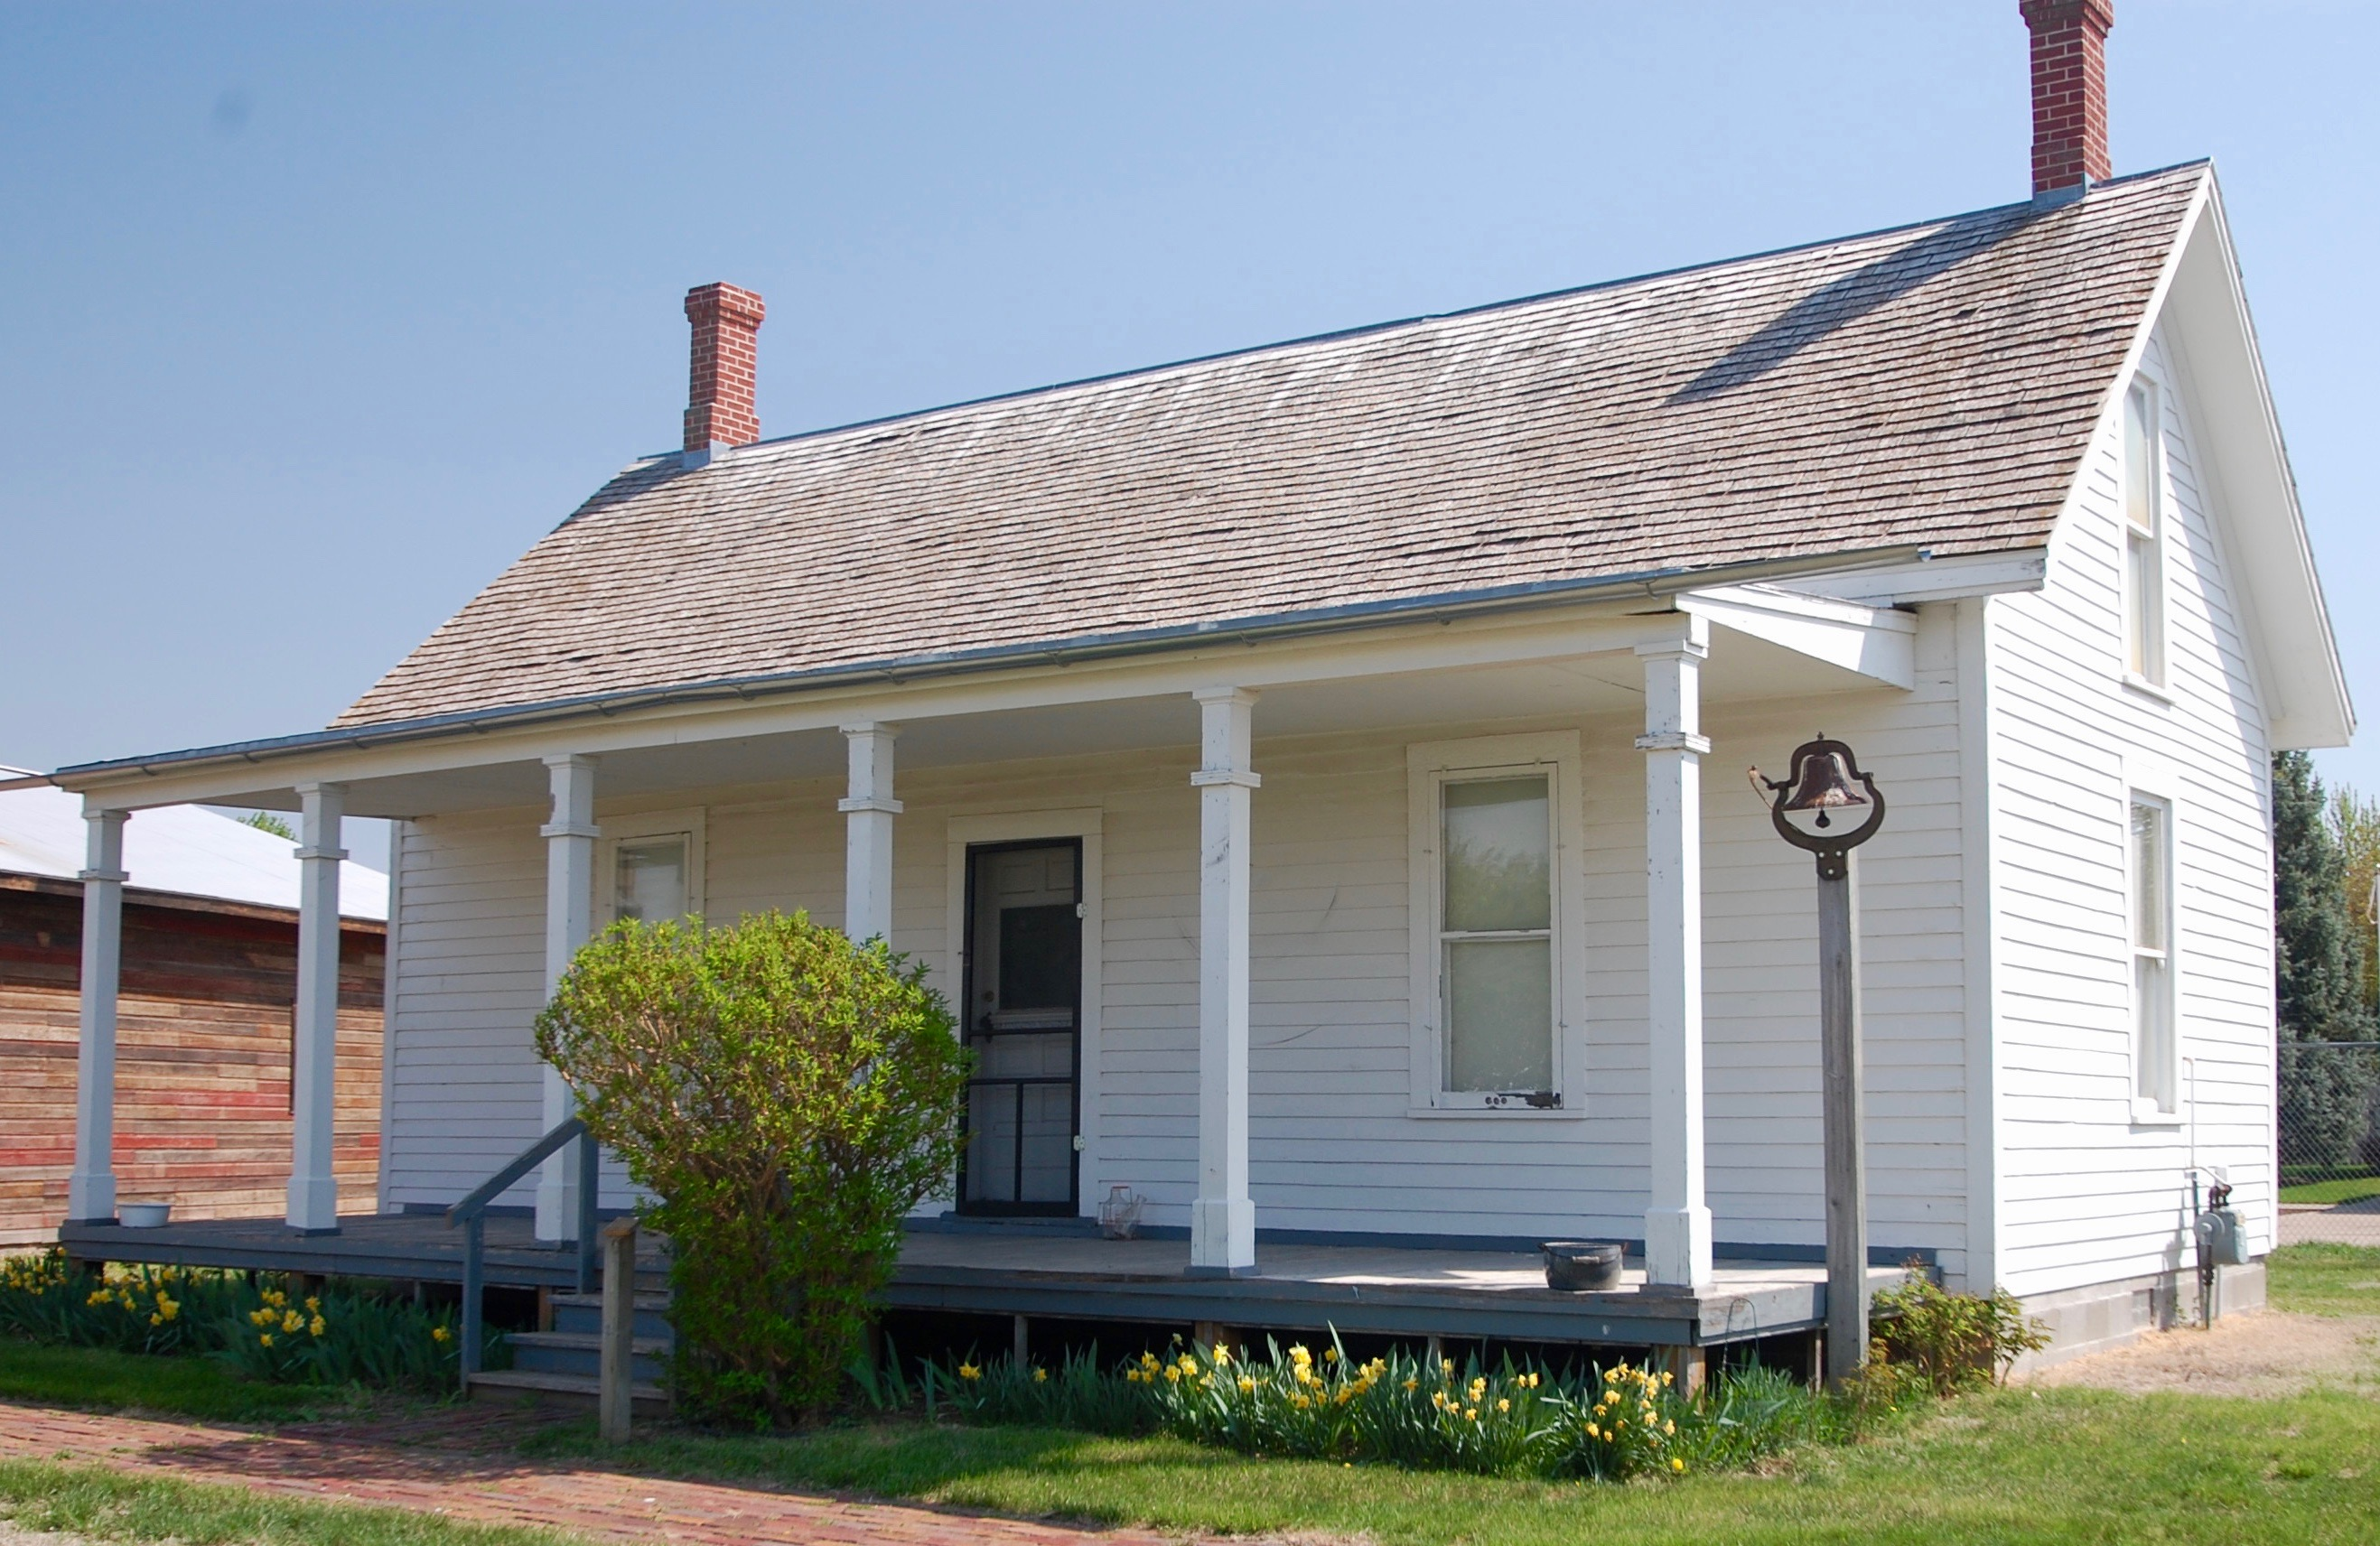 The Boyd Ranch House today.